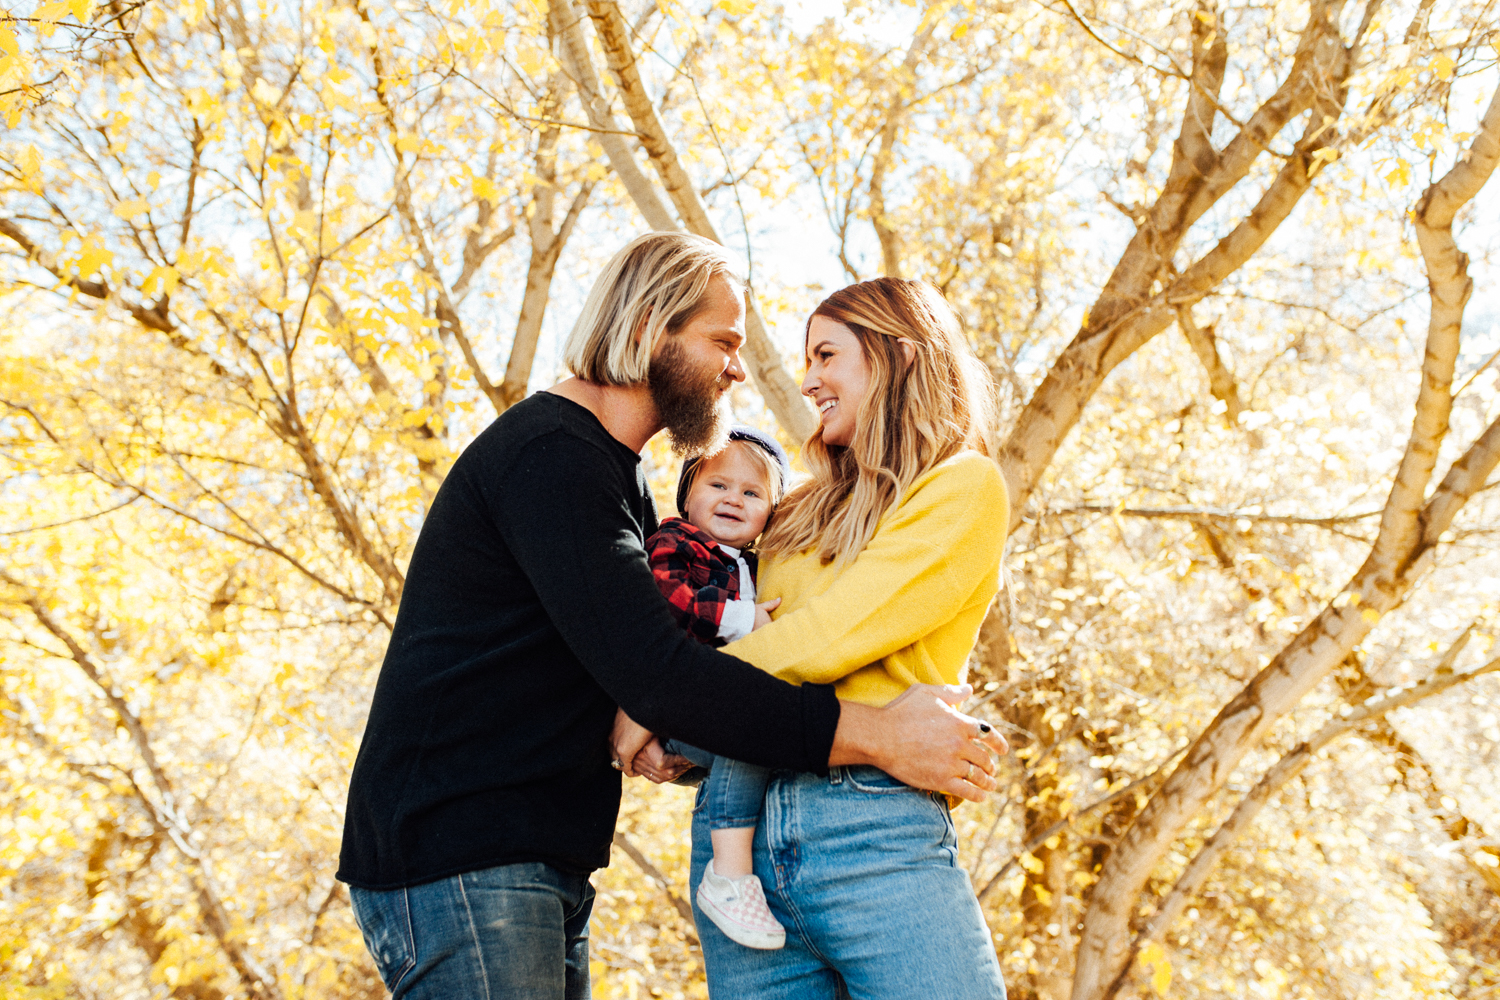 intimate-family-photo-in-fall-leaves-during-mini-photo-session-with-jen-fairchild-photography-slc-ut